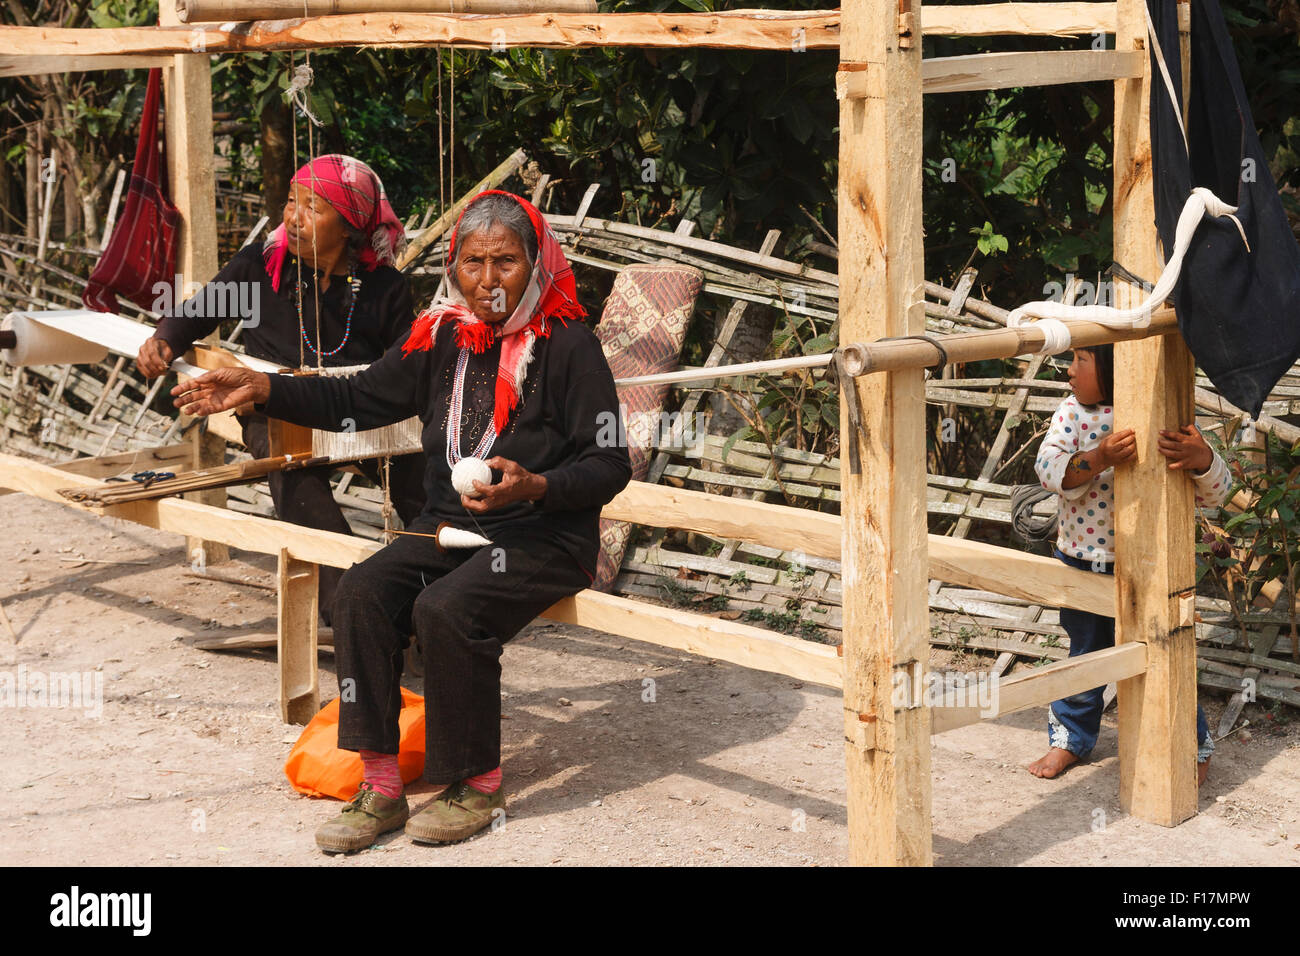 Old Dai women in a rural village in Xishuangbanna, Yunnan, China, weaving using a traditional wooden loom - Stock Image